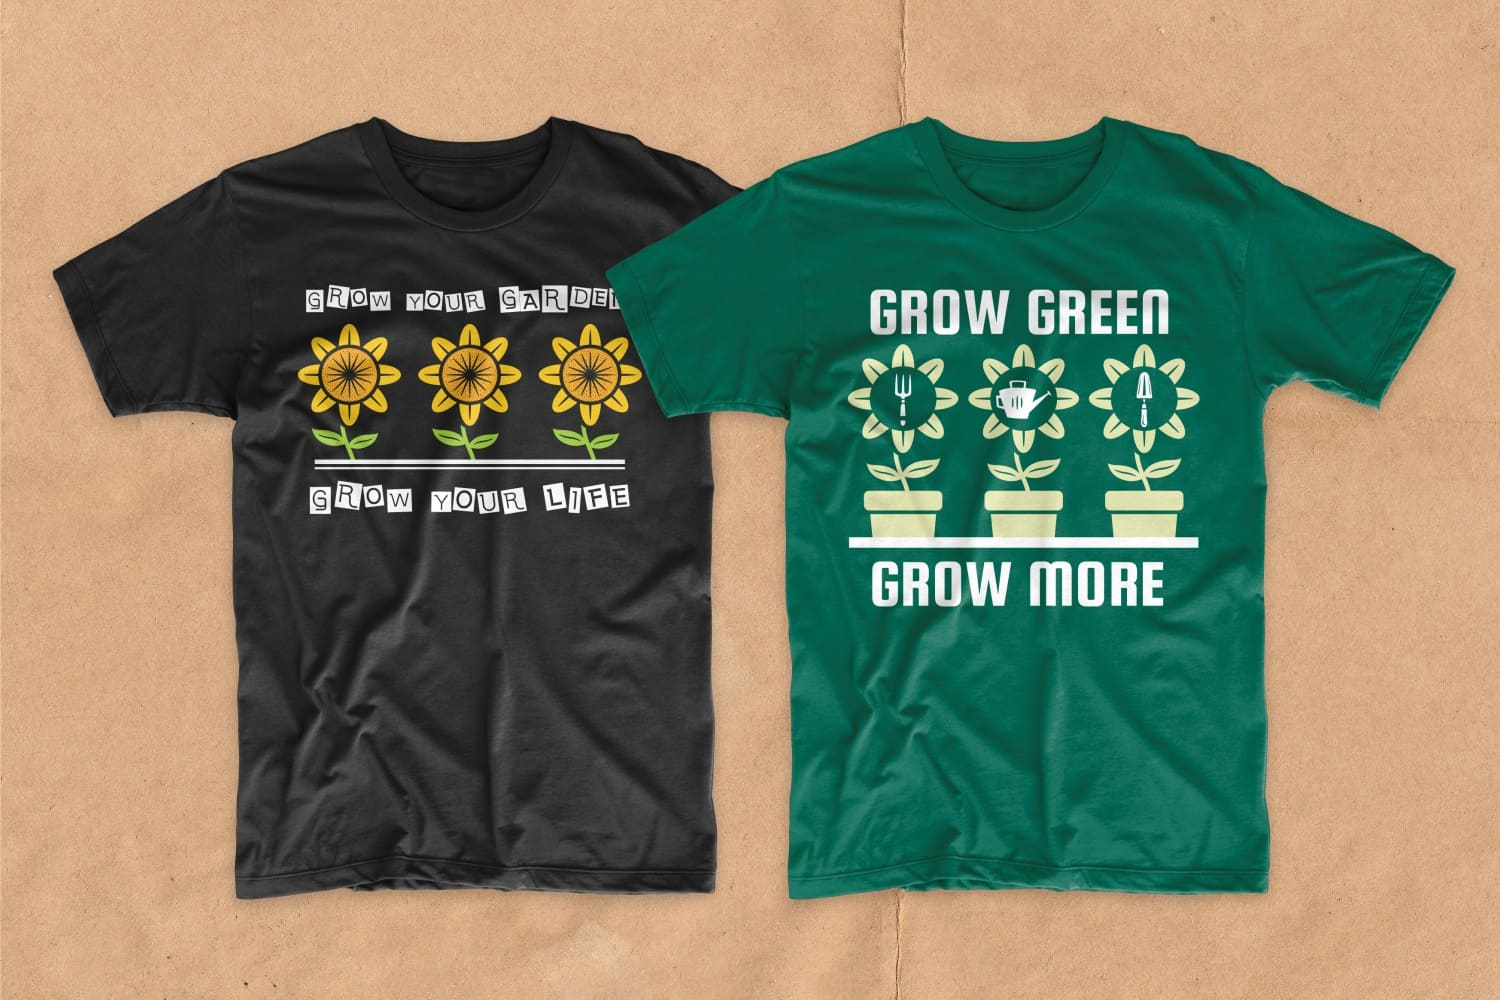 Black and green T-shirts featuring homemade sunflowers.